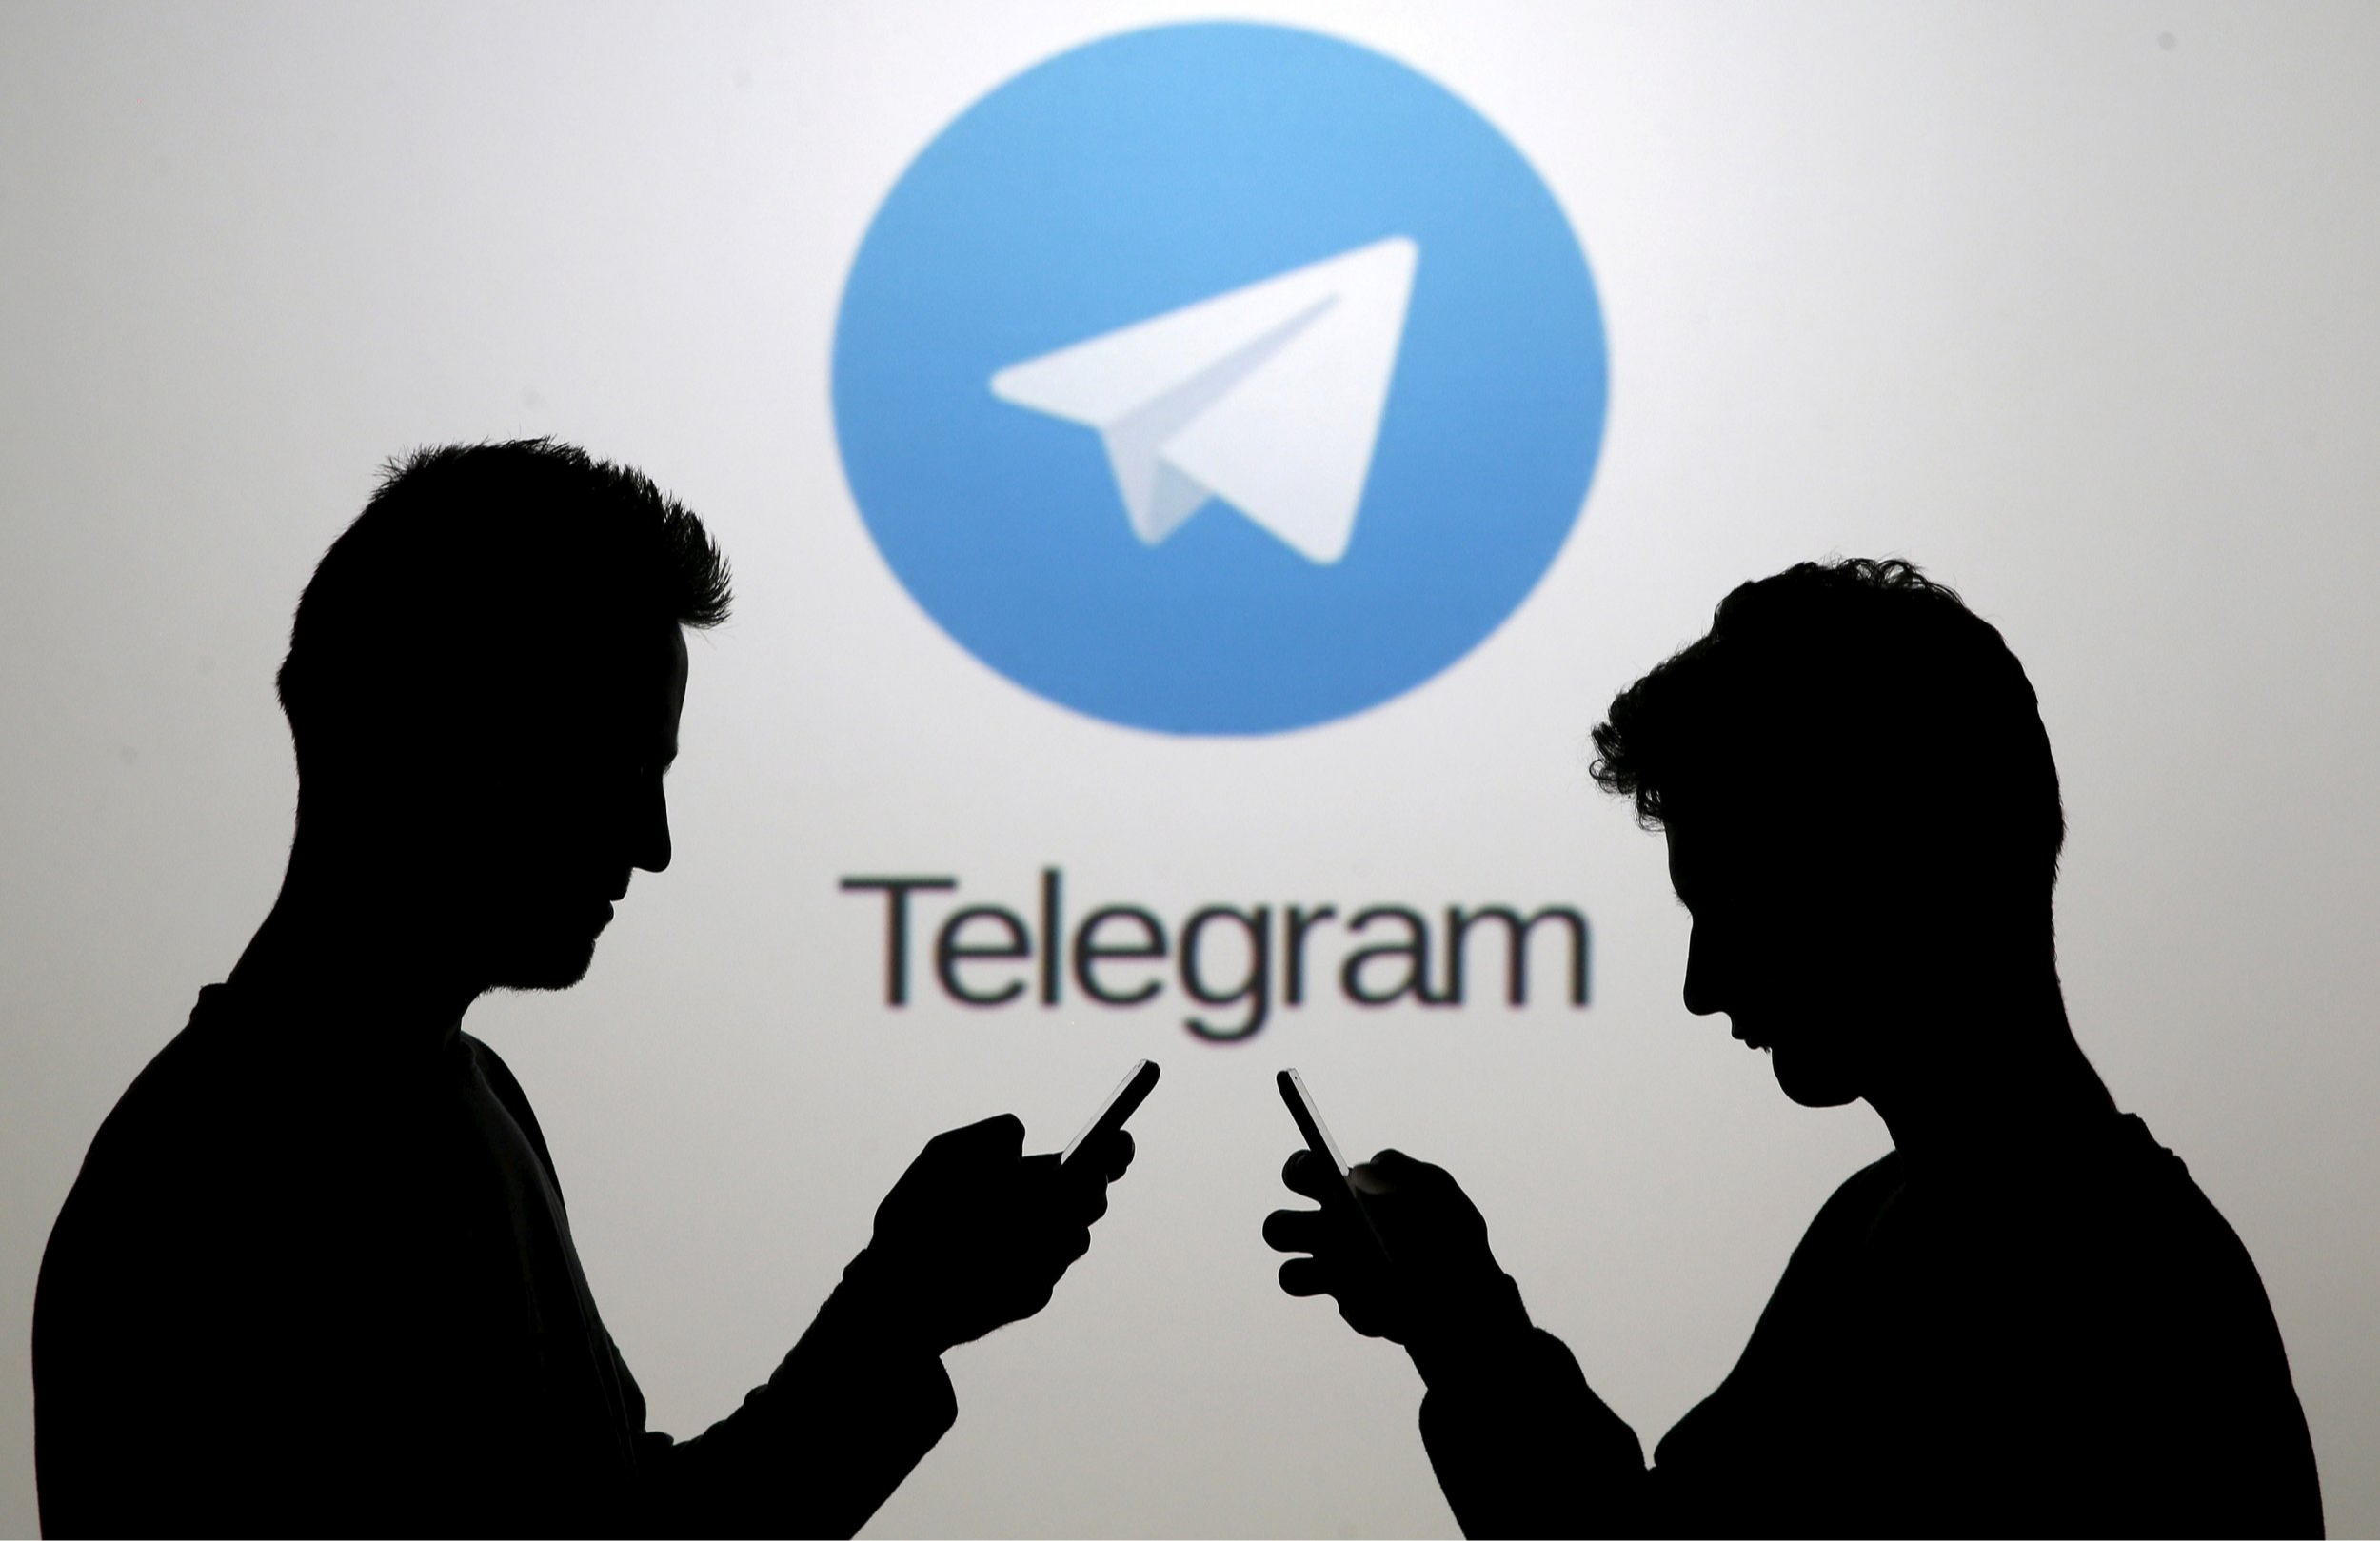 /7-reason-why-telegram-is-insecure-by-design-but-millions-still-flock-to-it-ignoring-privacy-concerns-qq1o344c feature image